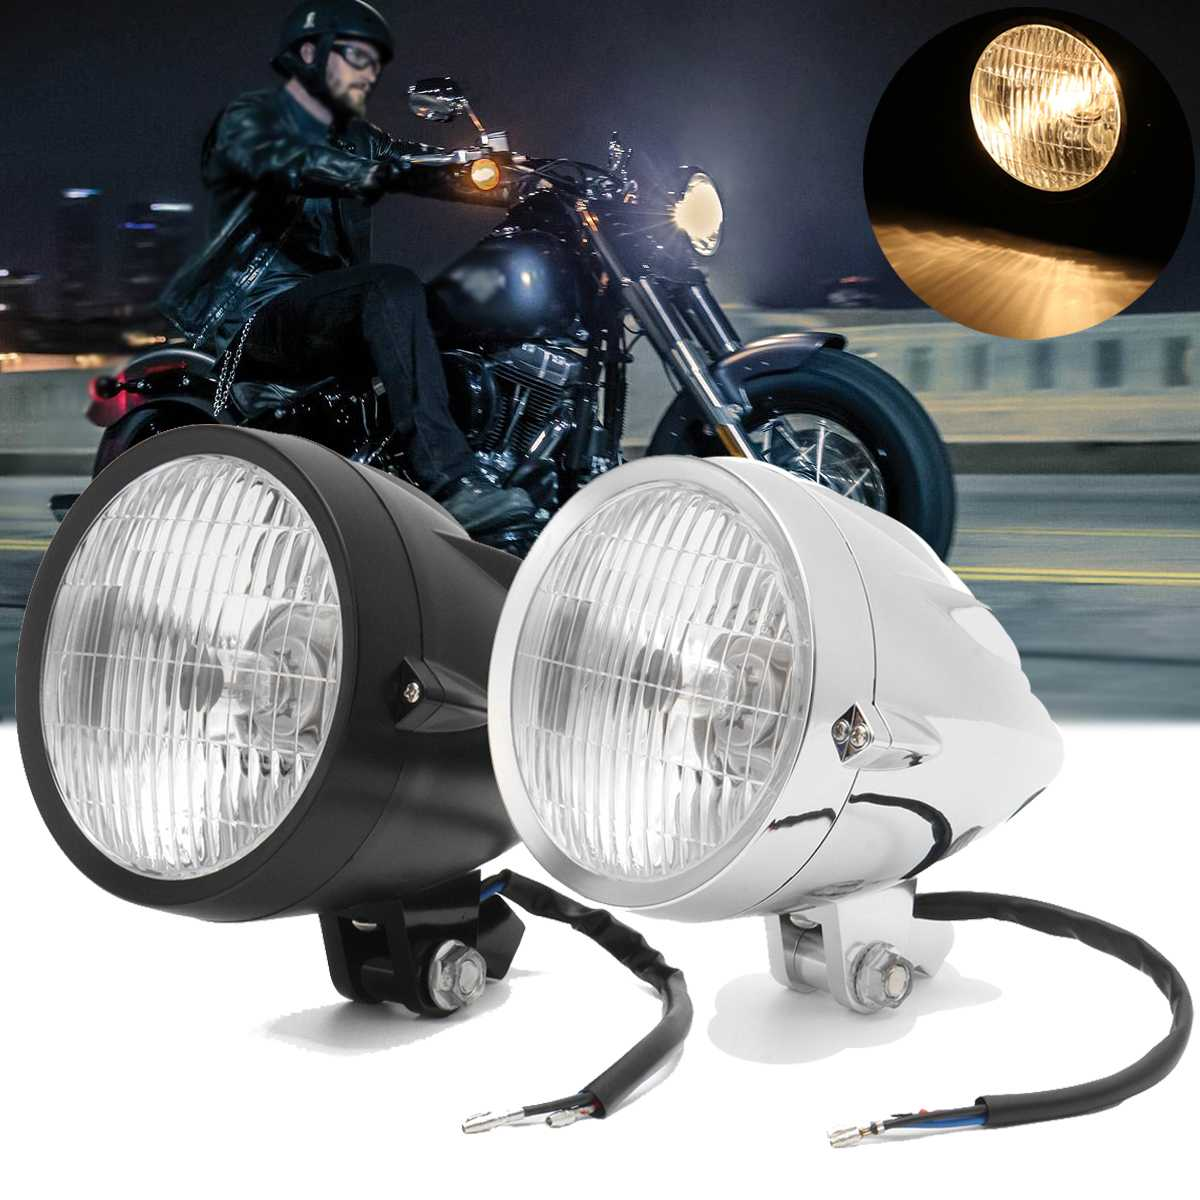 12V Bullet H4 Tri-Bar Halogen Motorcycle Vintage Headlight Lamp Bulbs For Harley Bobber Chopper Custom